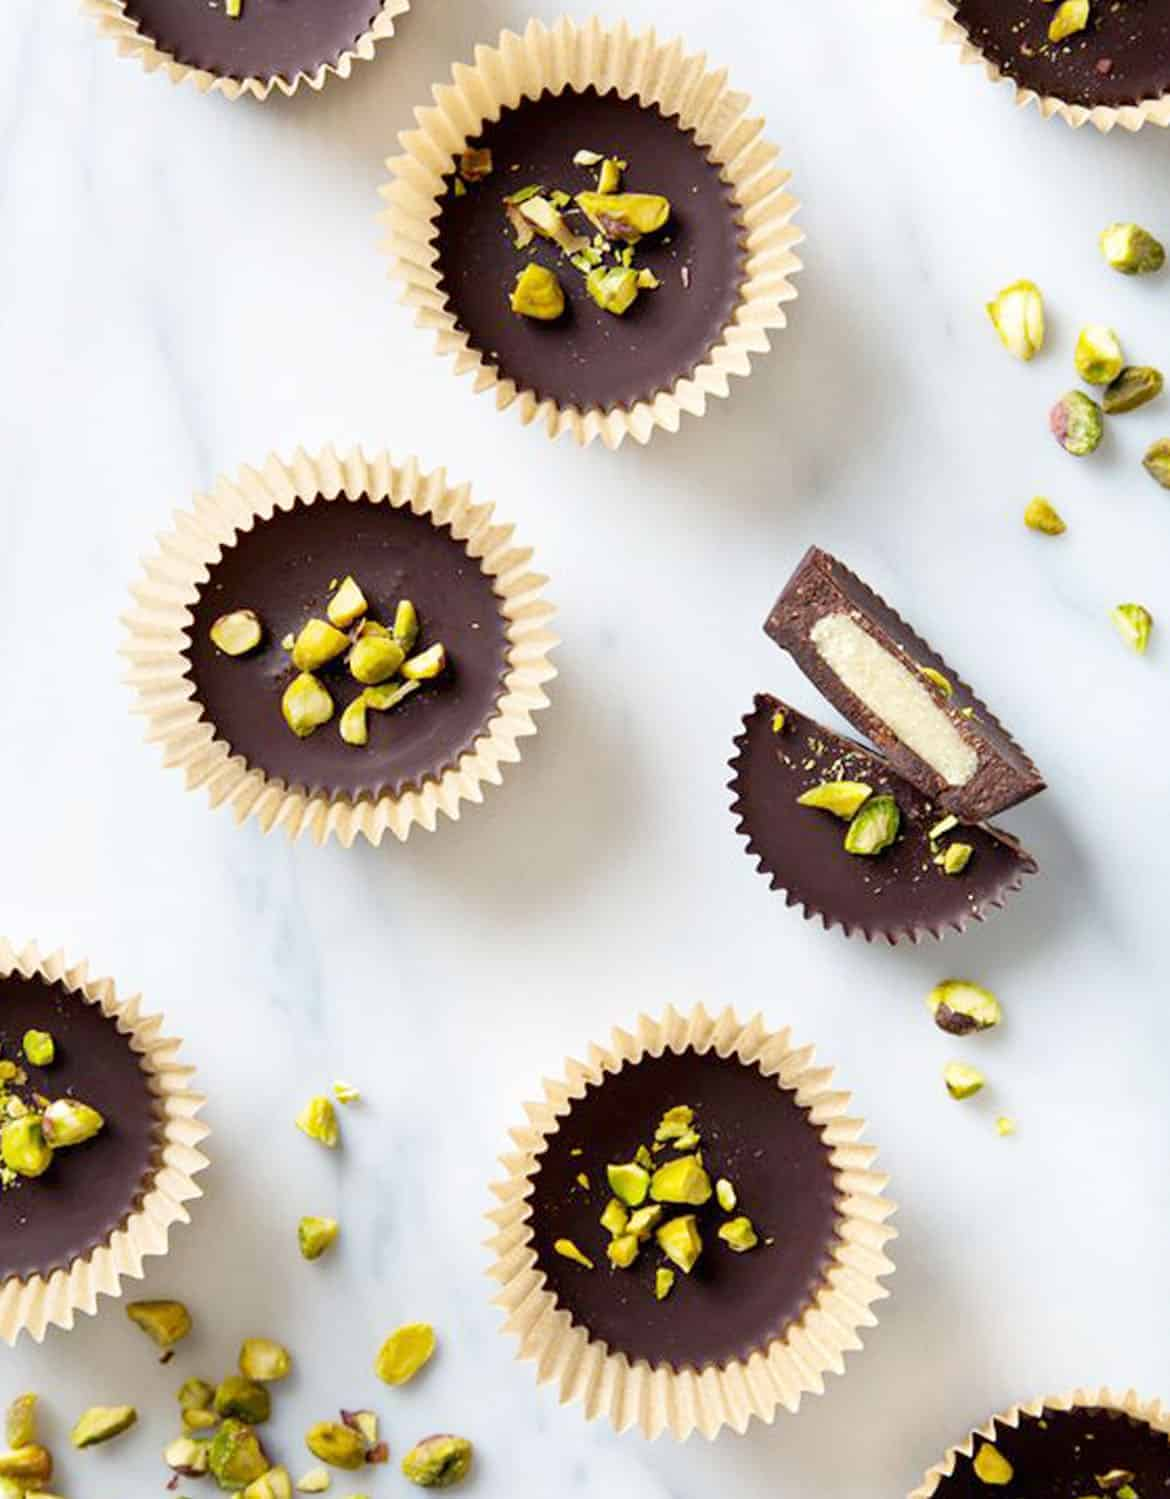 Top view of marzipan dark chocolate cups with salted pistachios over a white background - Pickles and Honey